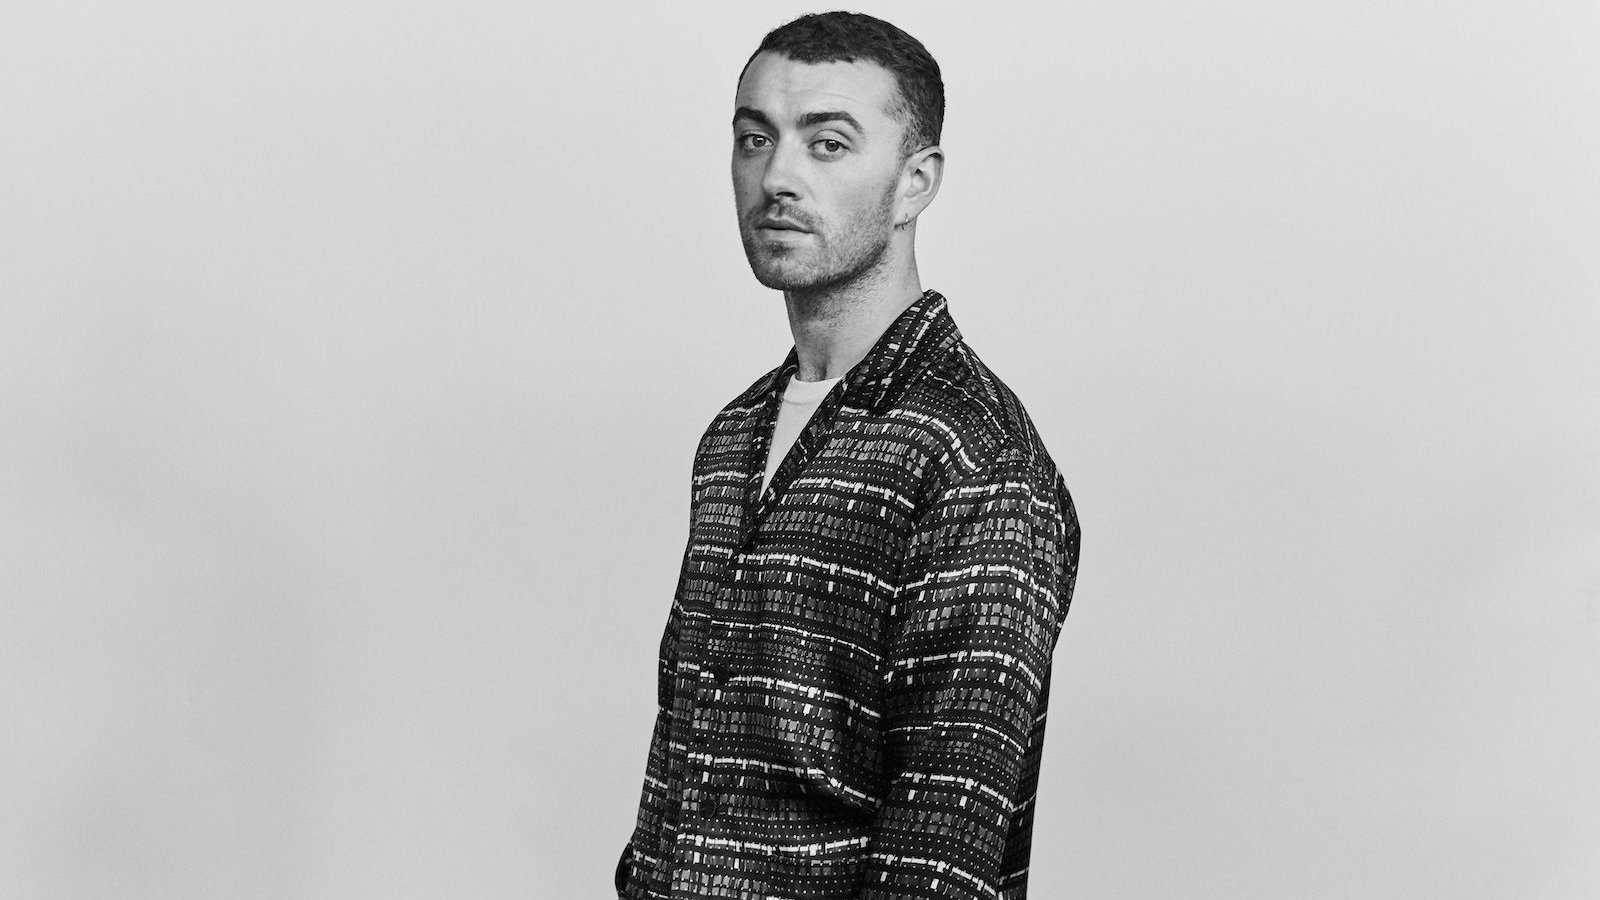 Sam Smith is a non-binary queer artist and one of the hottest gay singers out there